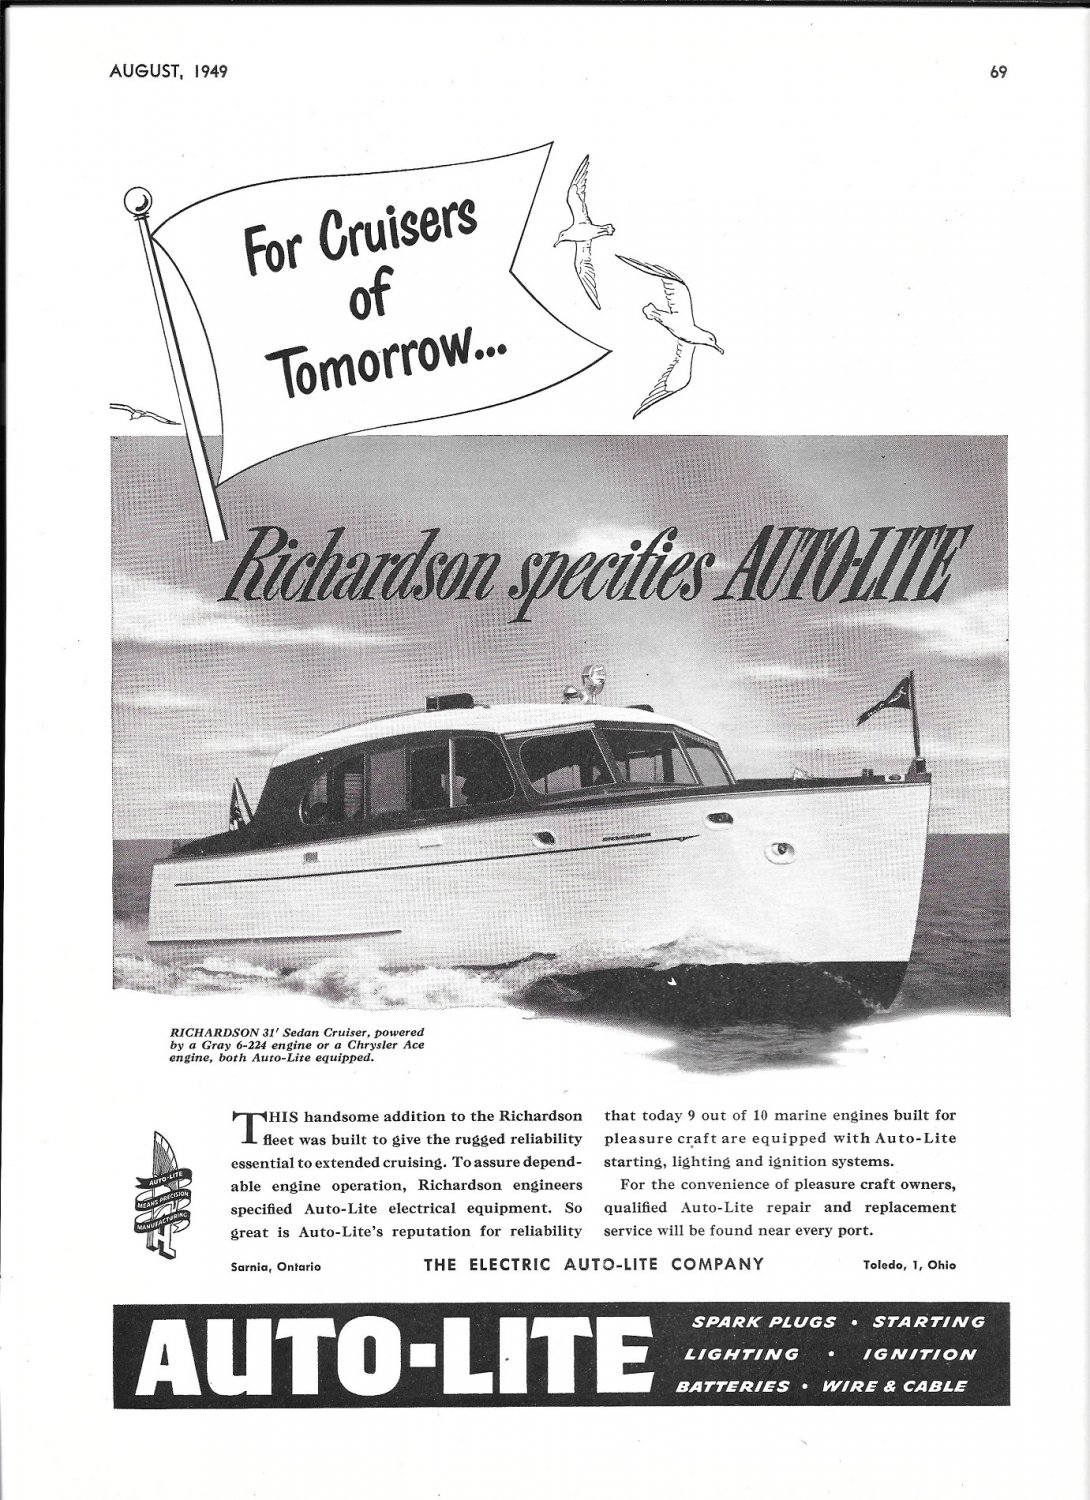 1949 Electric Auto- Lite Co. Ad- Richardson 31' Sedan Cruiser